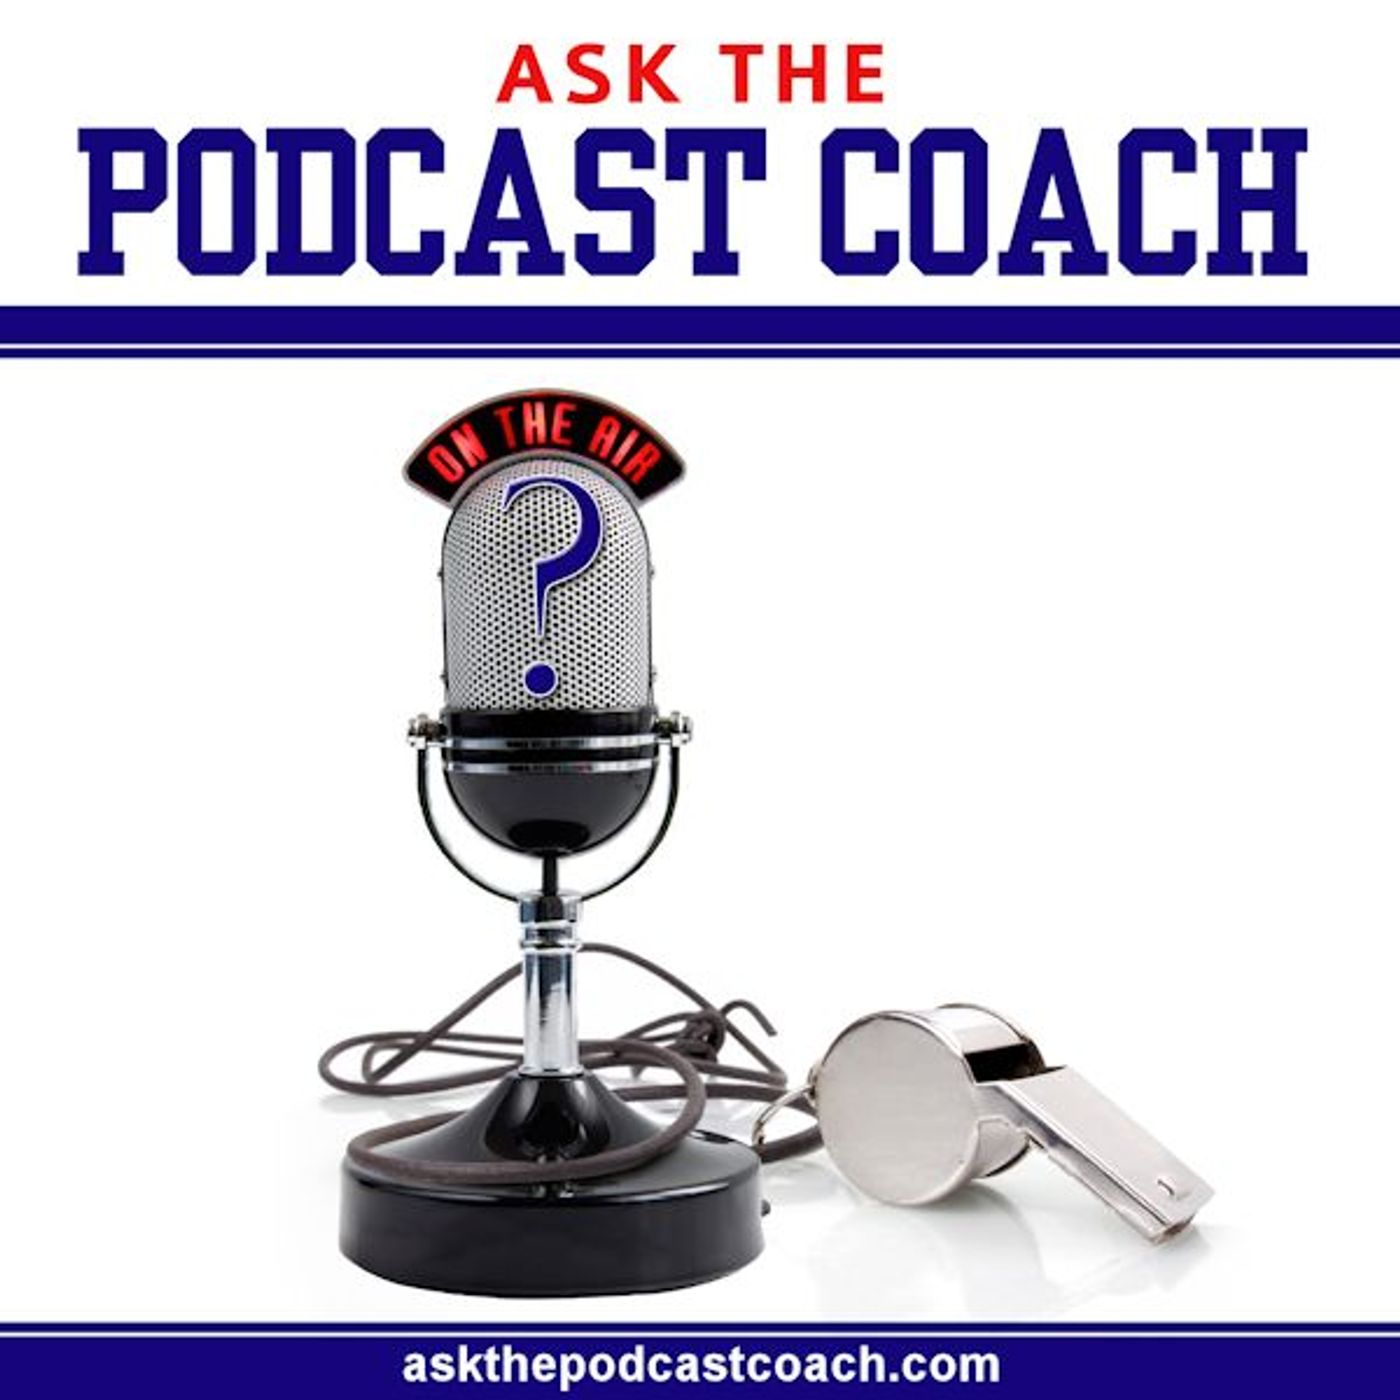 Ask the Podcast Coach - How to Podcast